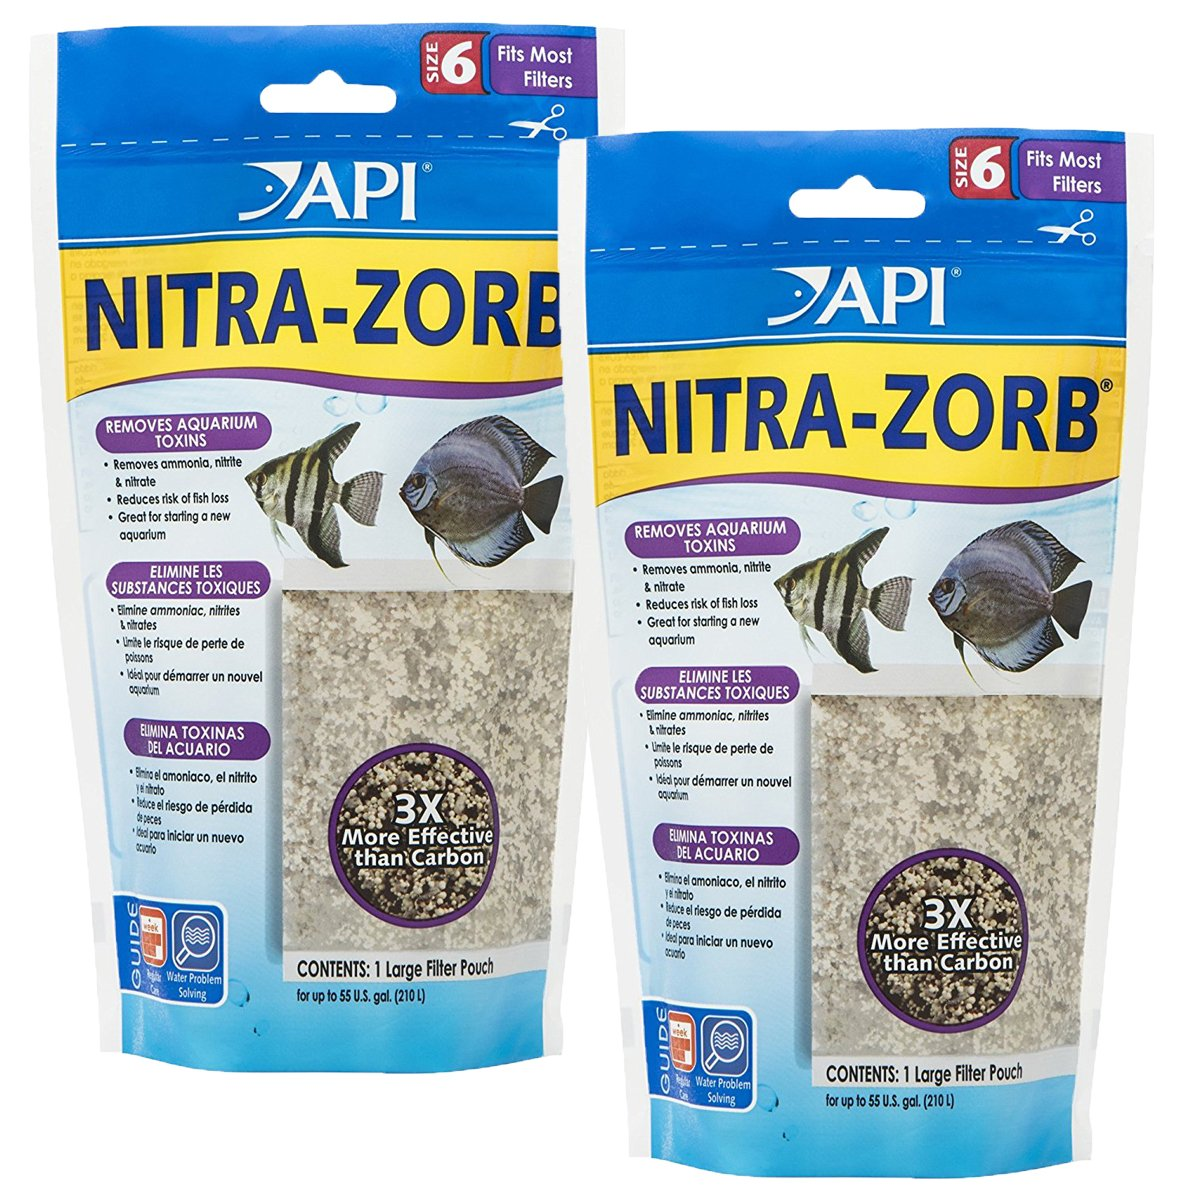 API NITRA-ZORB SIZE 6 Aquarium Canister Filter Filtration Pouch 1-Count Bag (2-pack) by API